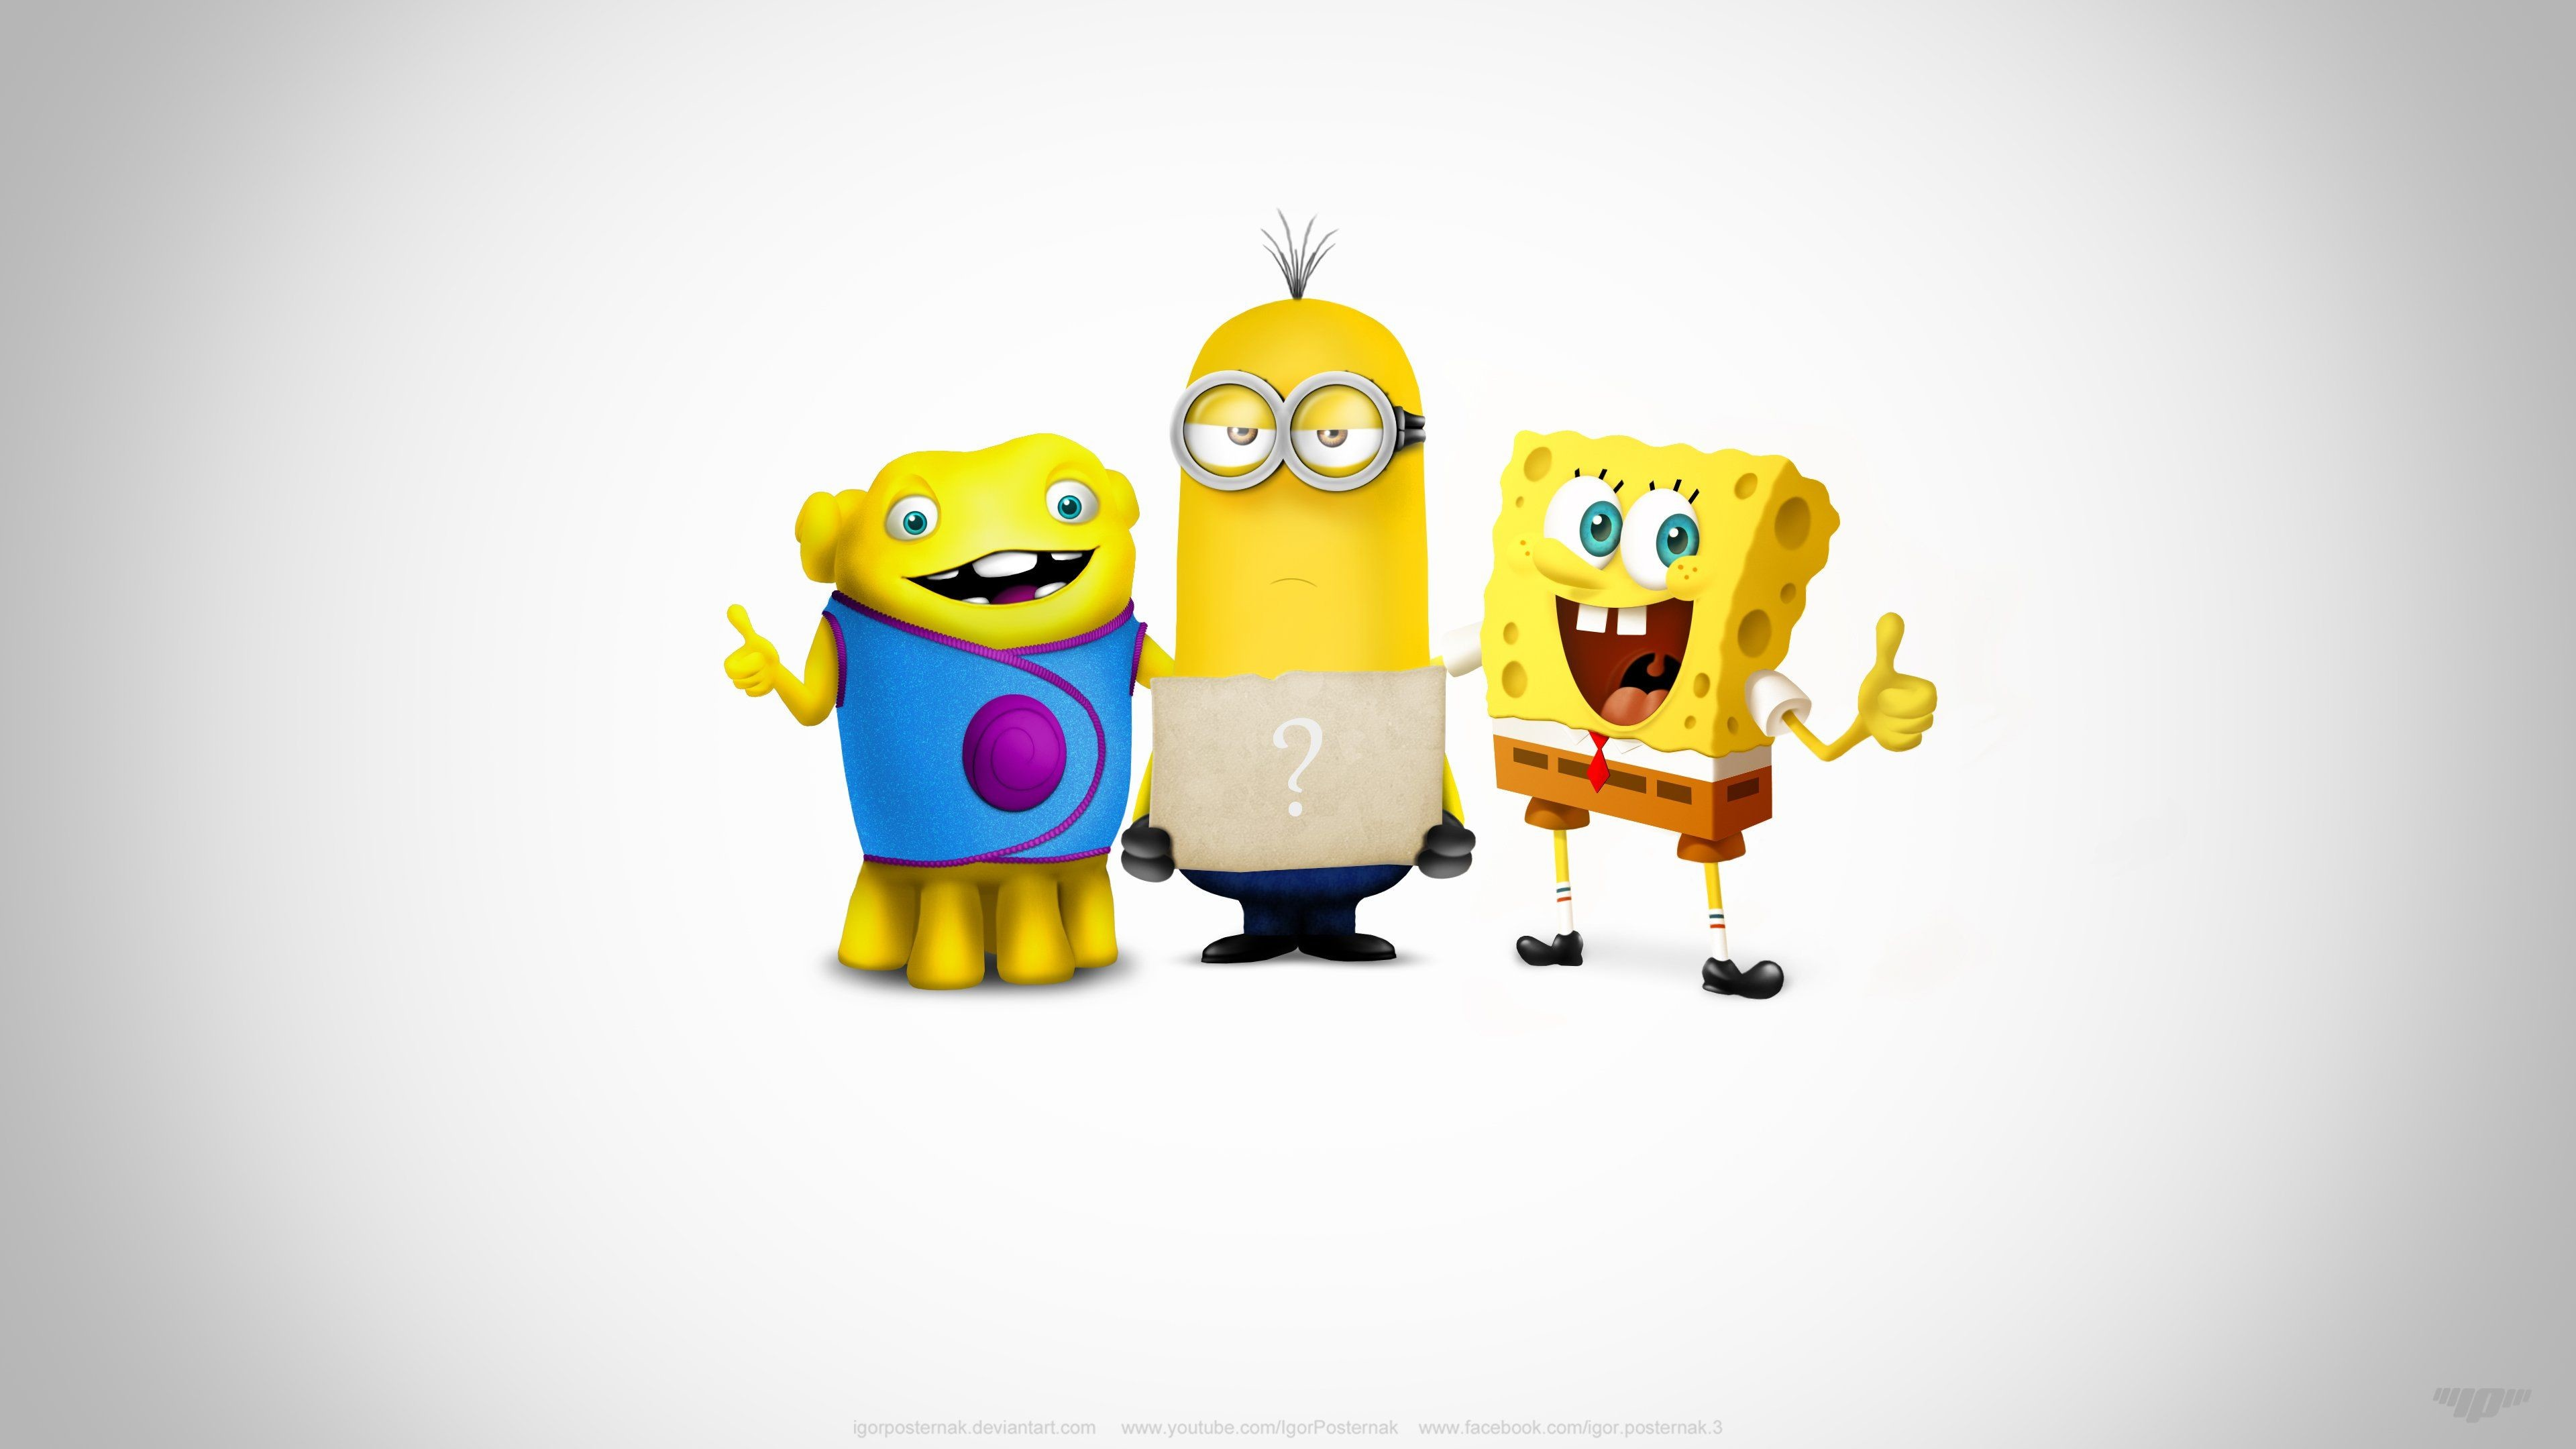 3840x2160 Super Team Oh Kevin Spongebob cartoon wallpaper design cute funny .